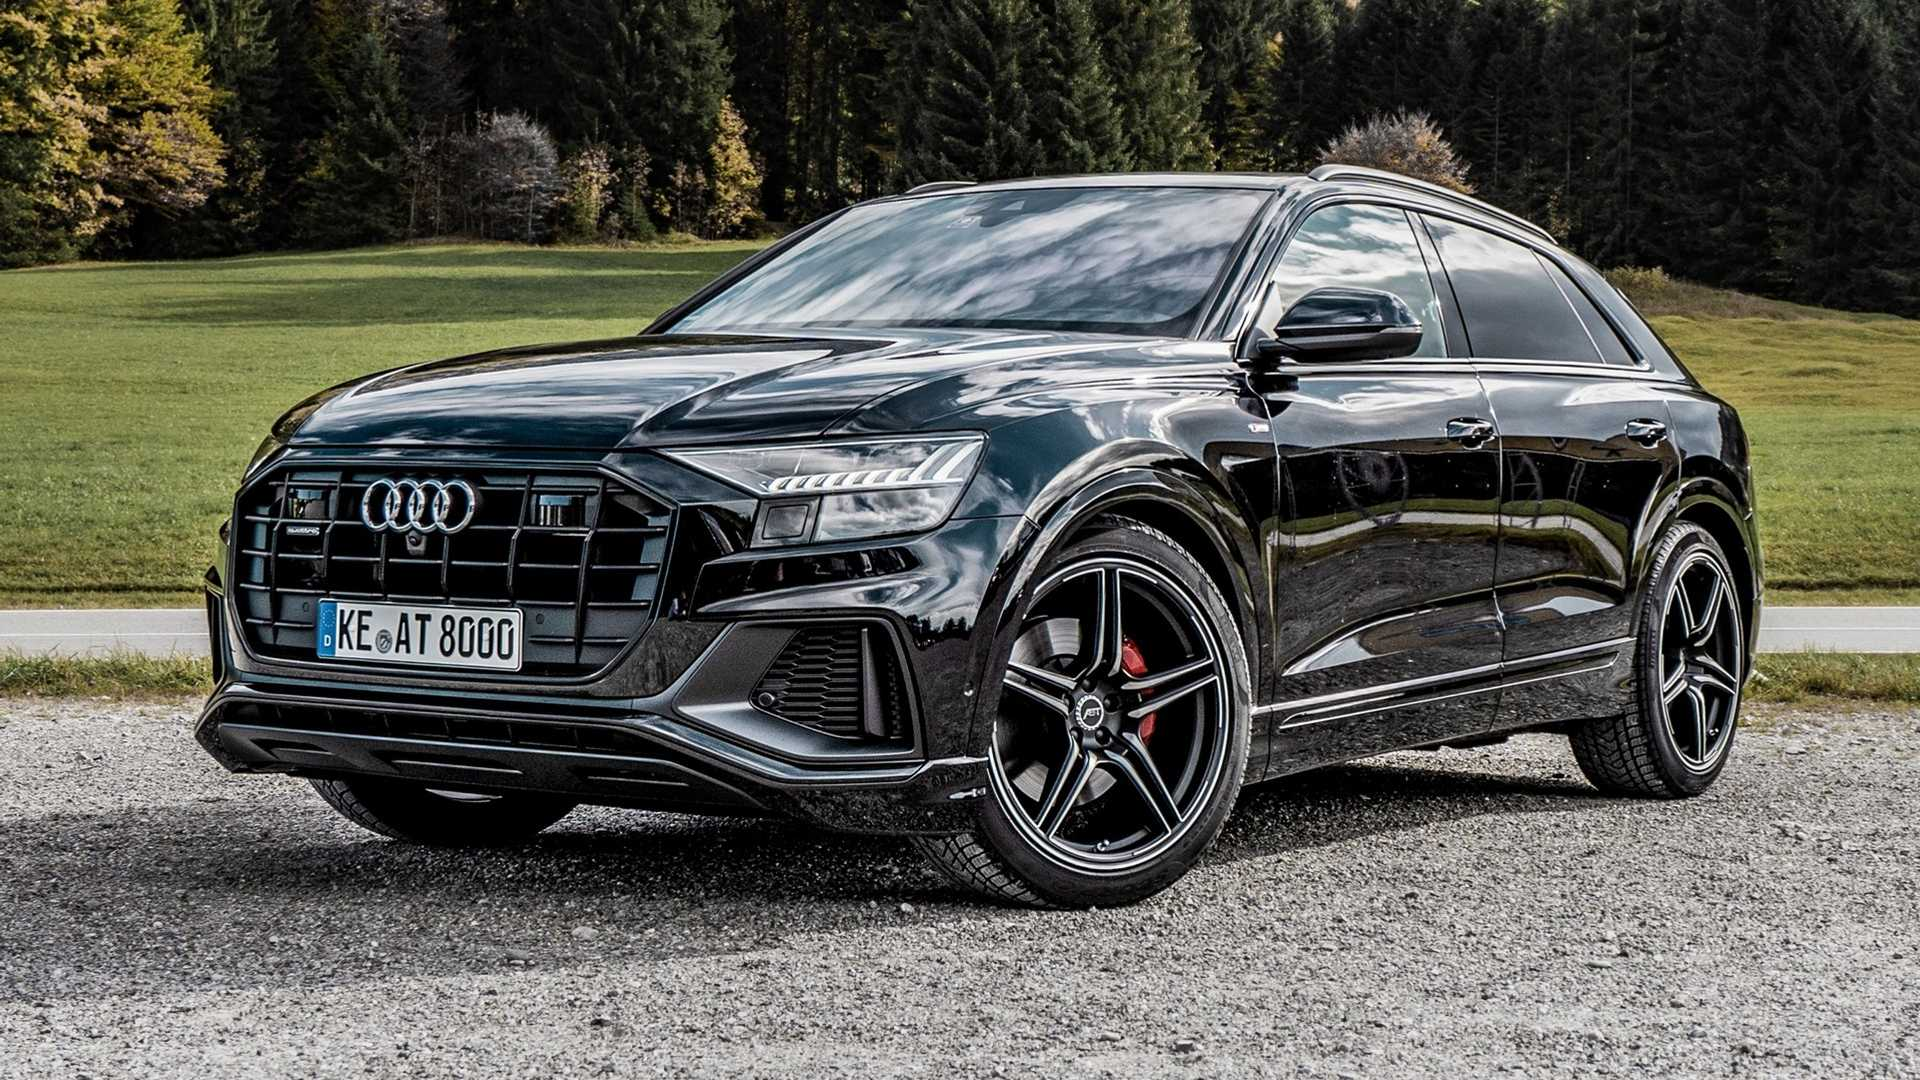 Abt Extracts More Diesel Power From The Audi Q8